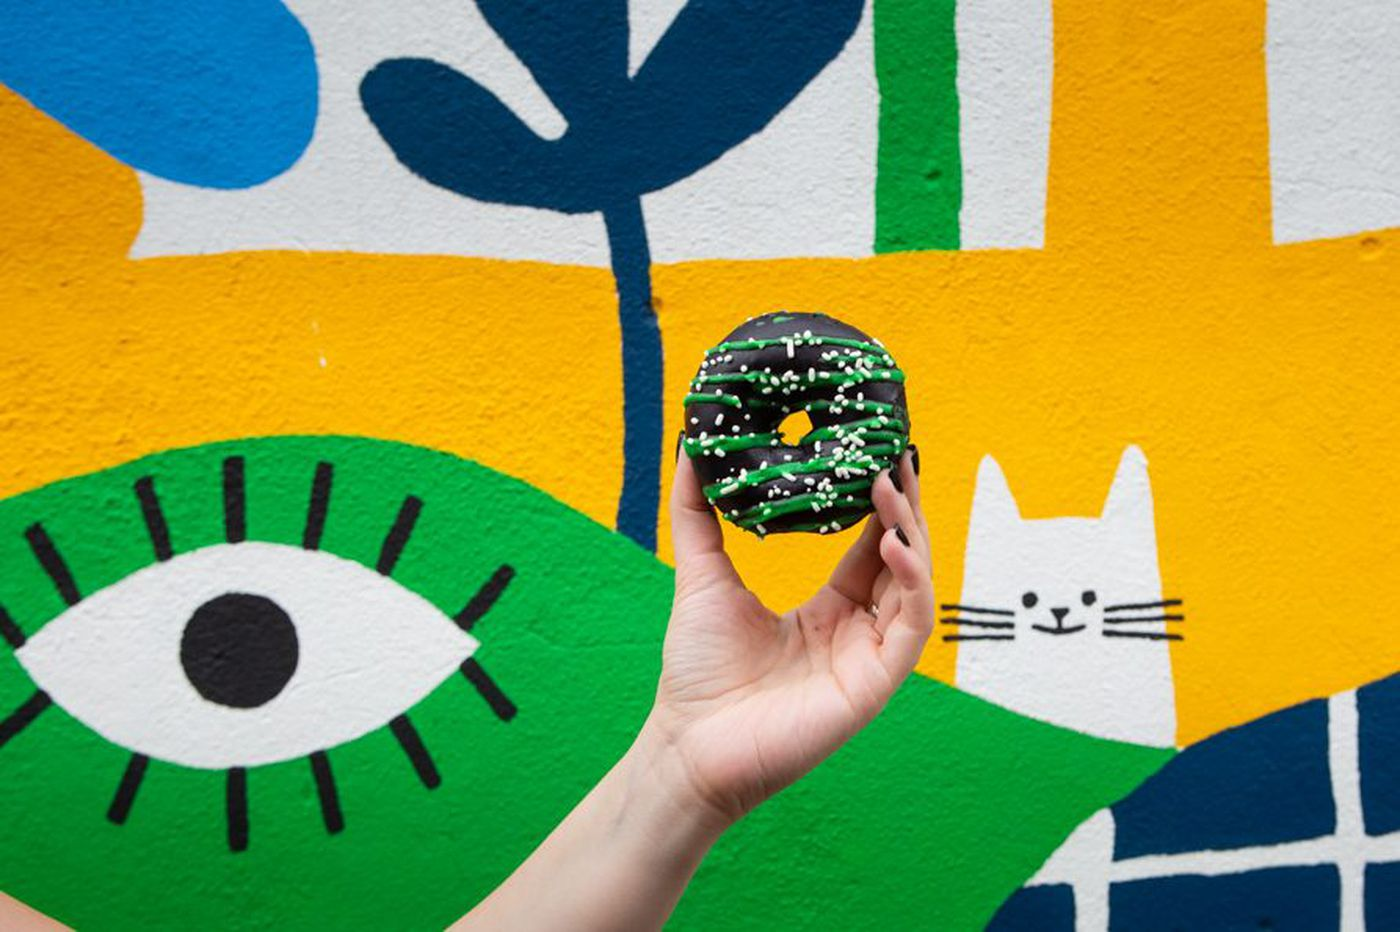 Federal Donuts and Mural Arts Philadelphia are teaming up on a charitable Berries & Cream doughnut